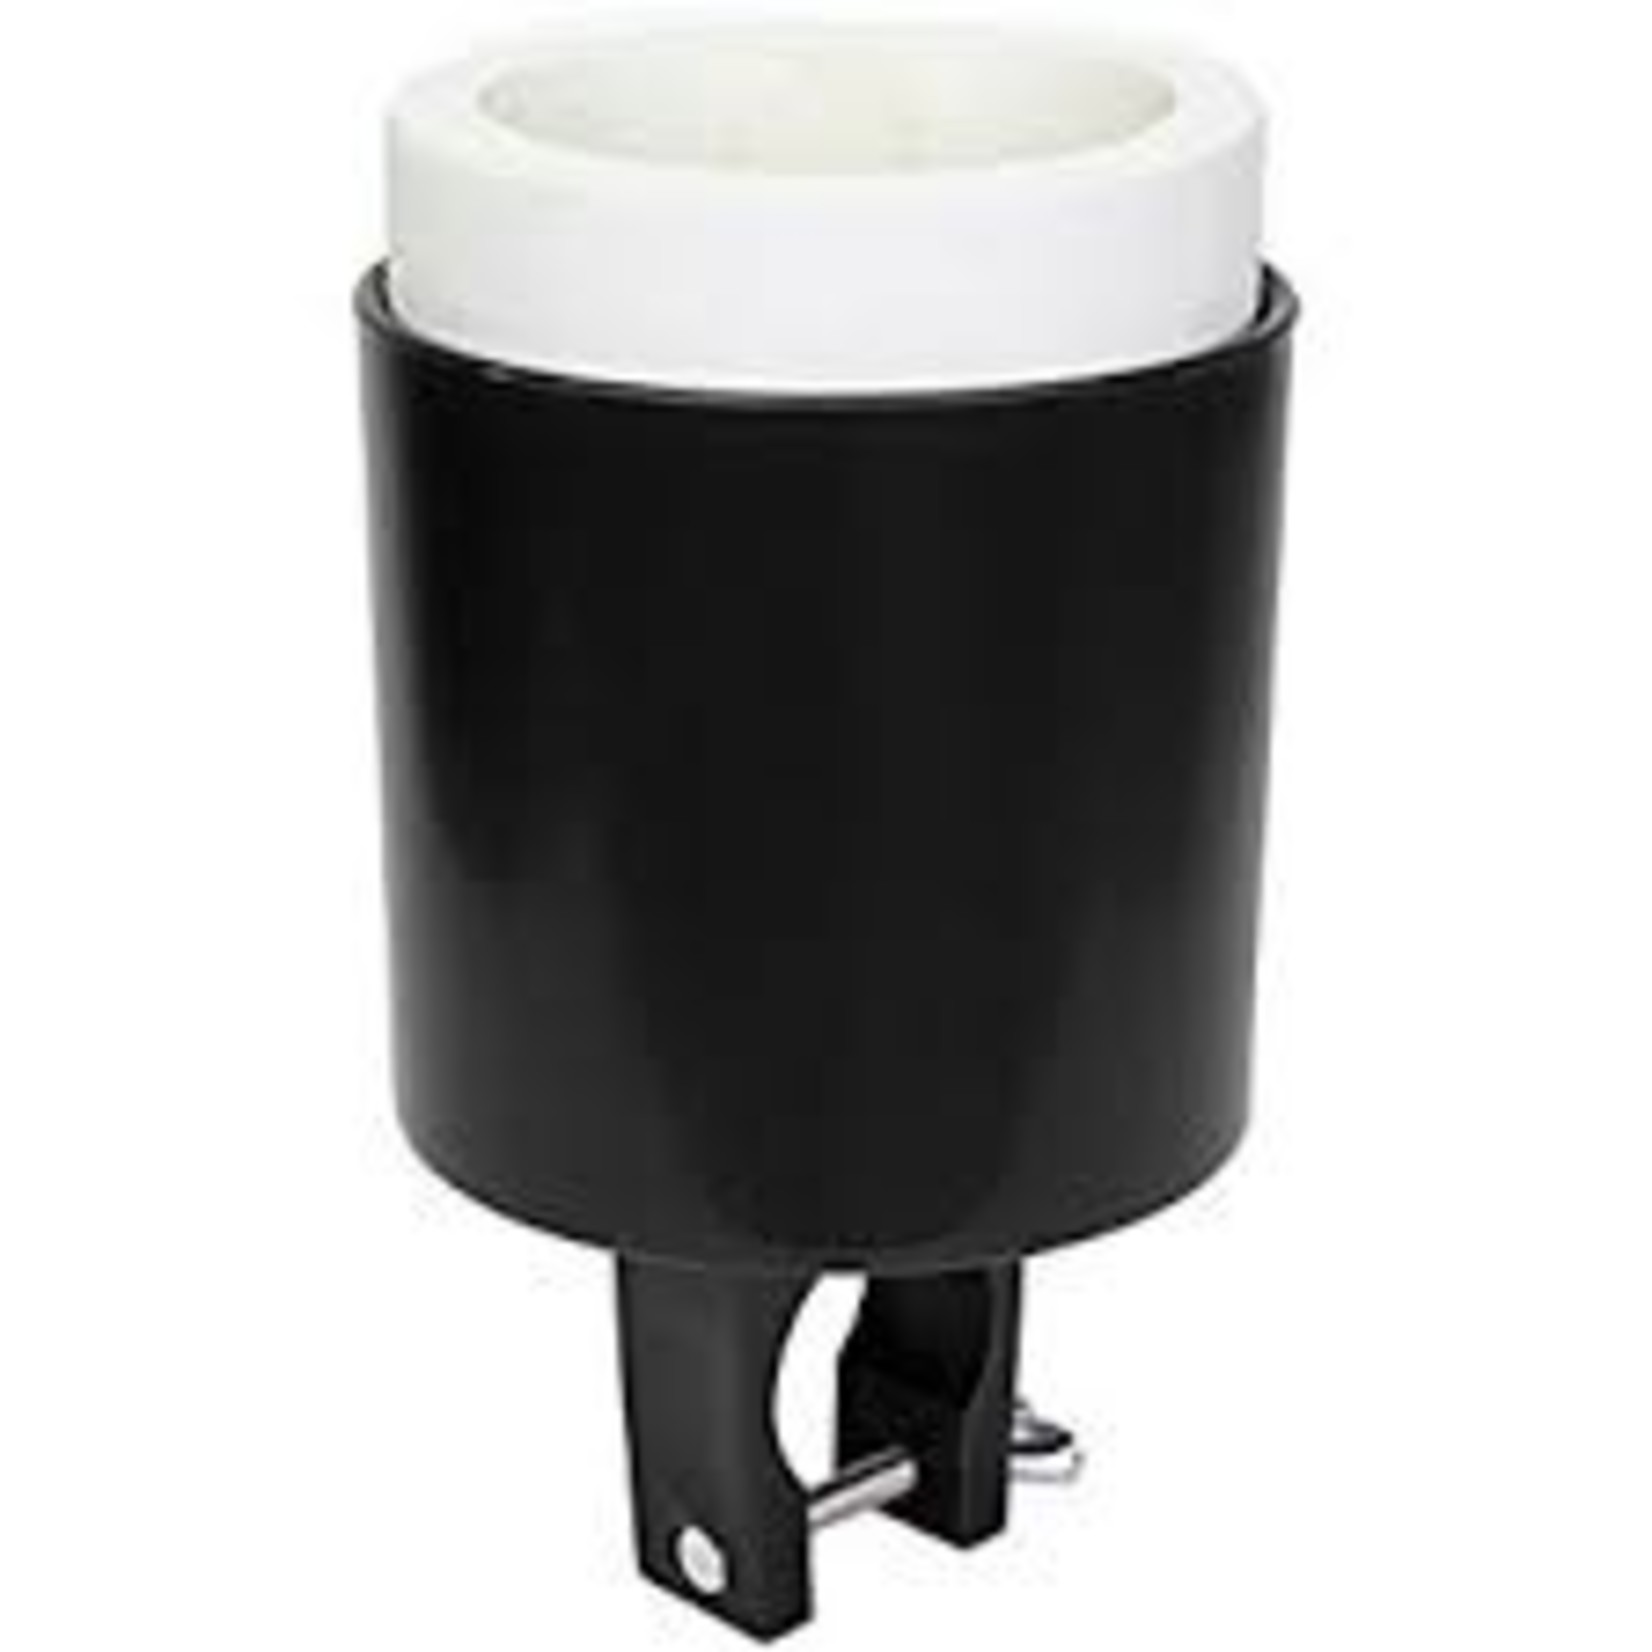 Cantainer Drink Holder